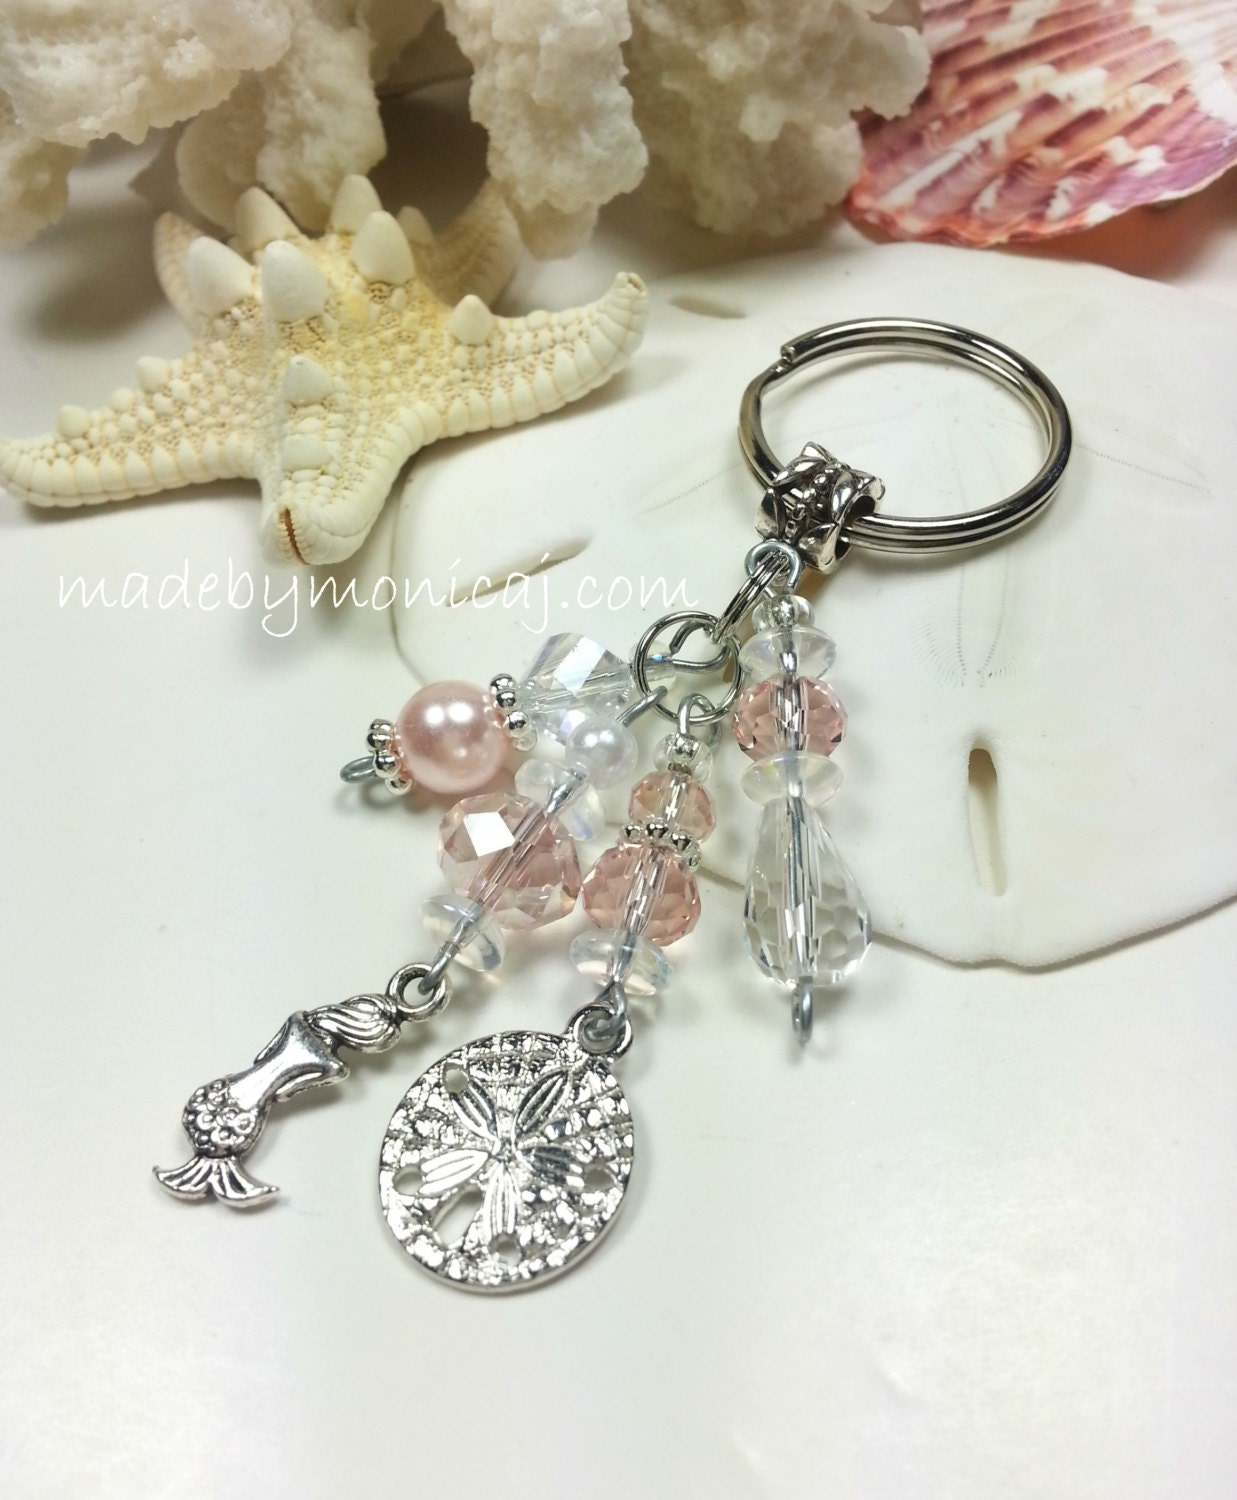 Girly Keychains Cute Girly Keychain With Beach